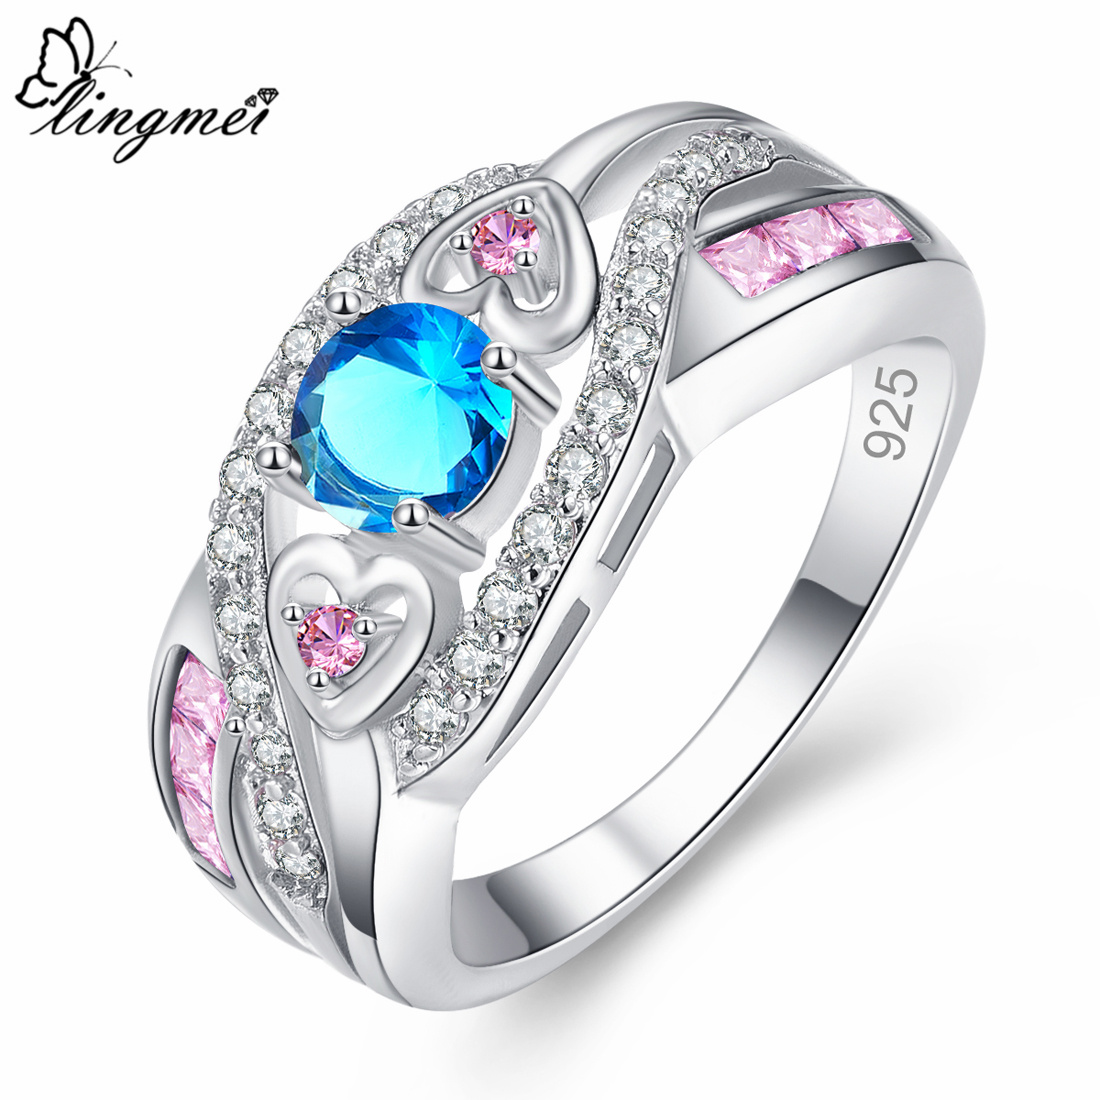 lingmei Dropshipping Fashion Women Wedding Jewelry Oval Heart Design Multicolor & Purple White CZ Silver 925 Ring Size 6 7 8 9 1